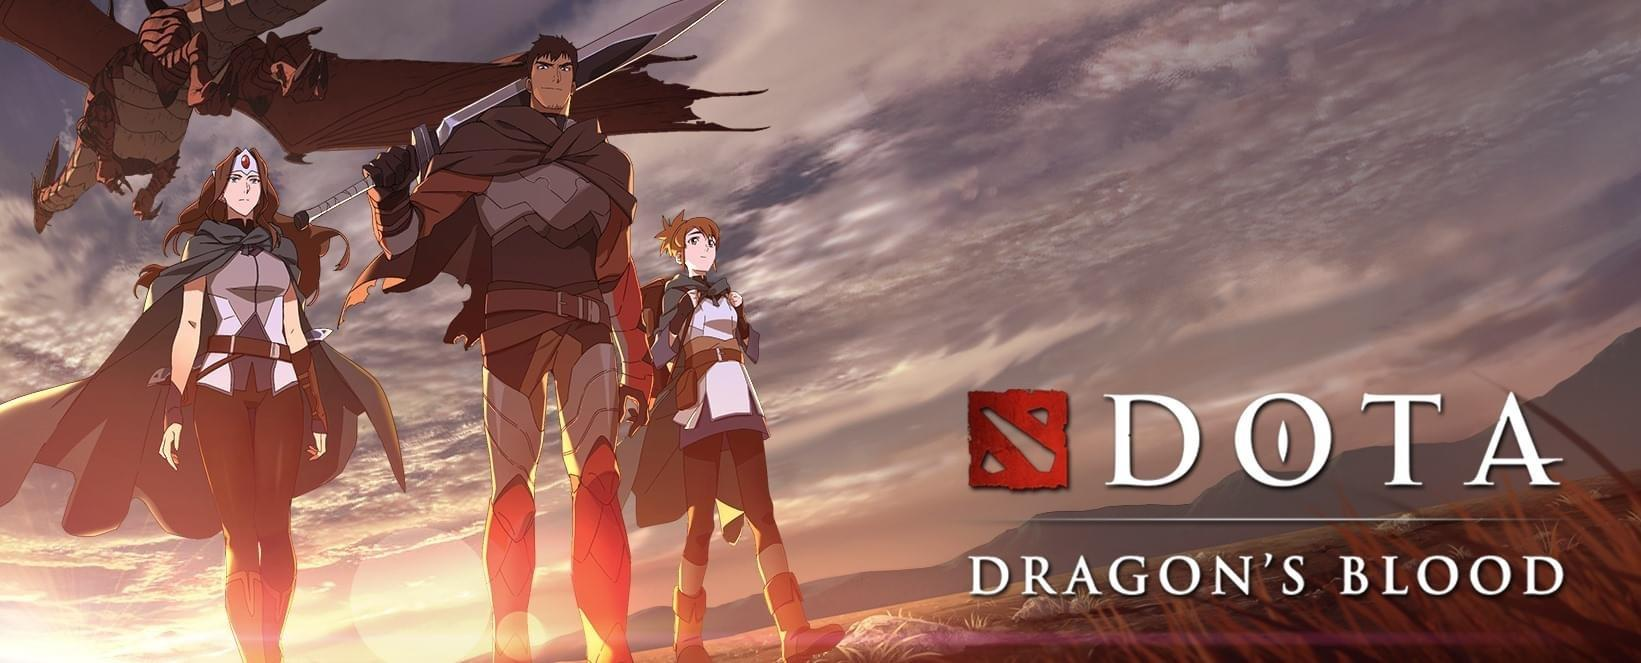 Dota Dragon Blood season 2 release date, plot expectations and everything you need to know